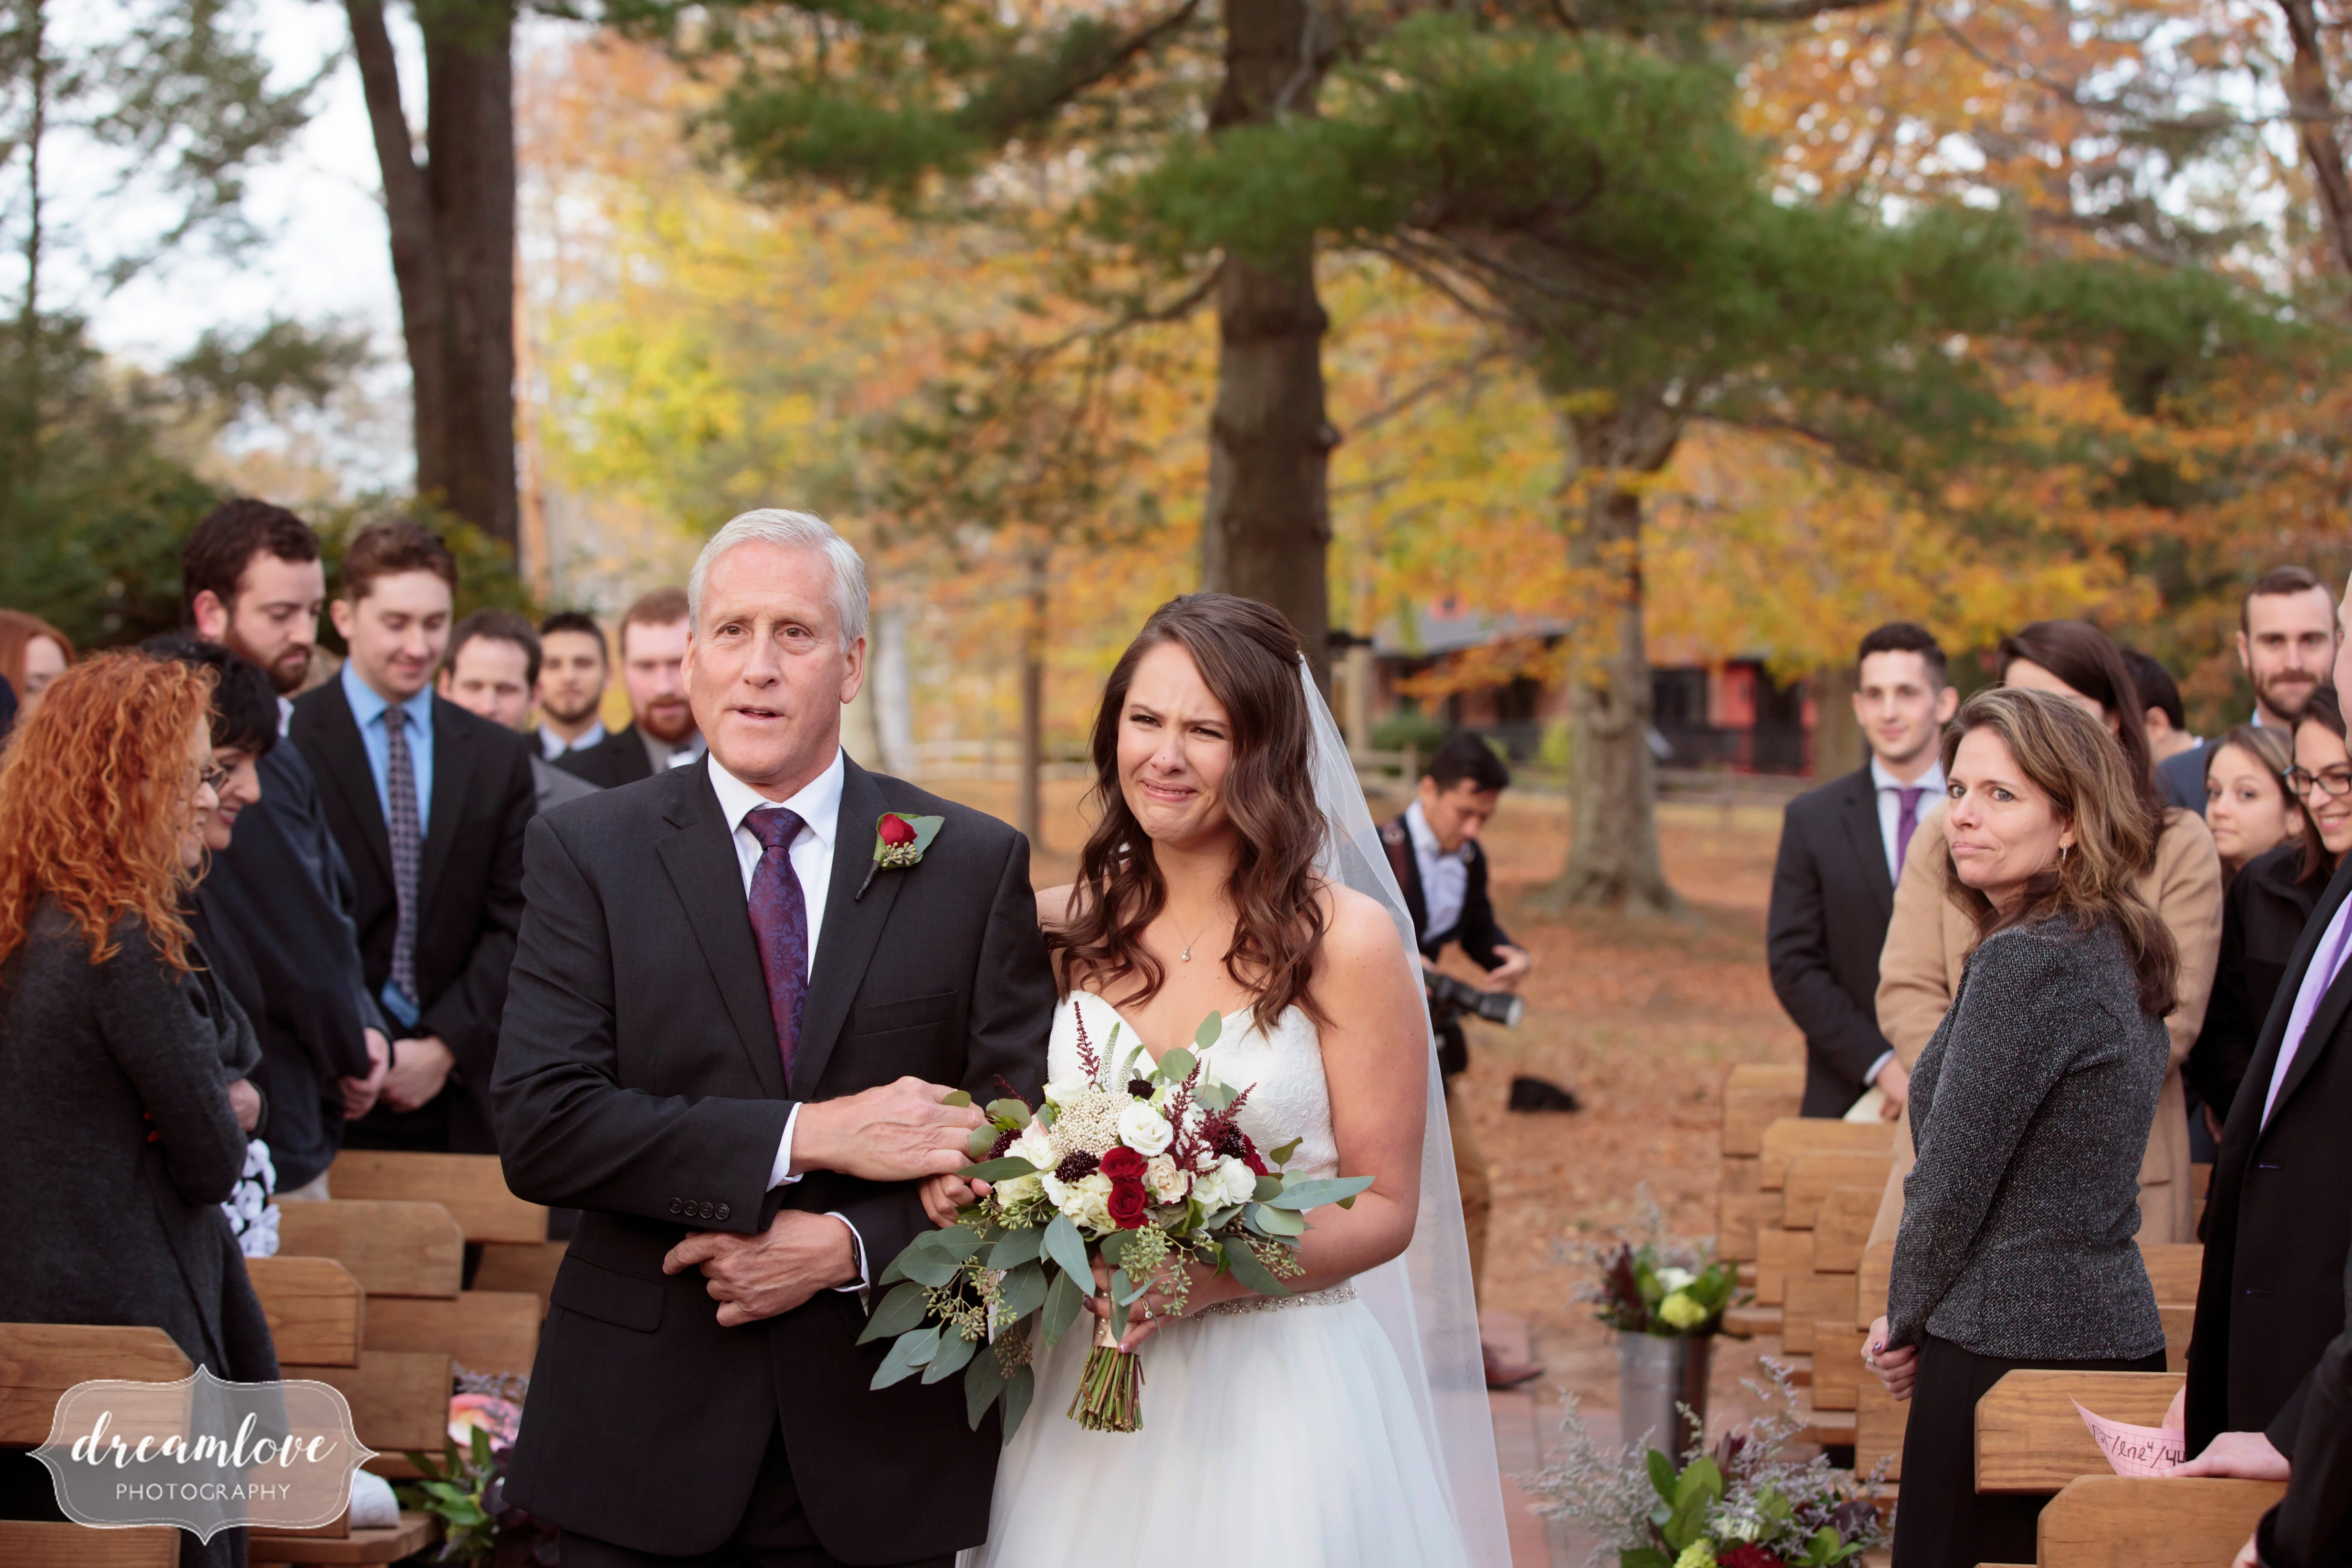 Bride and her father walk down the aisle at gazebo ceremony in CT.